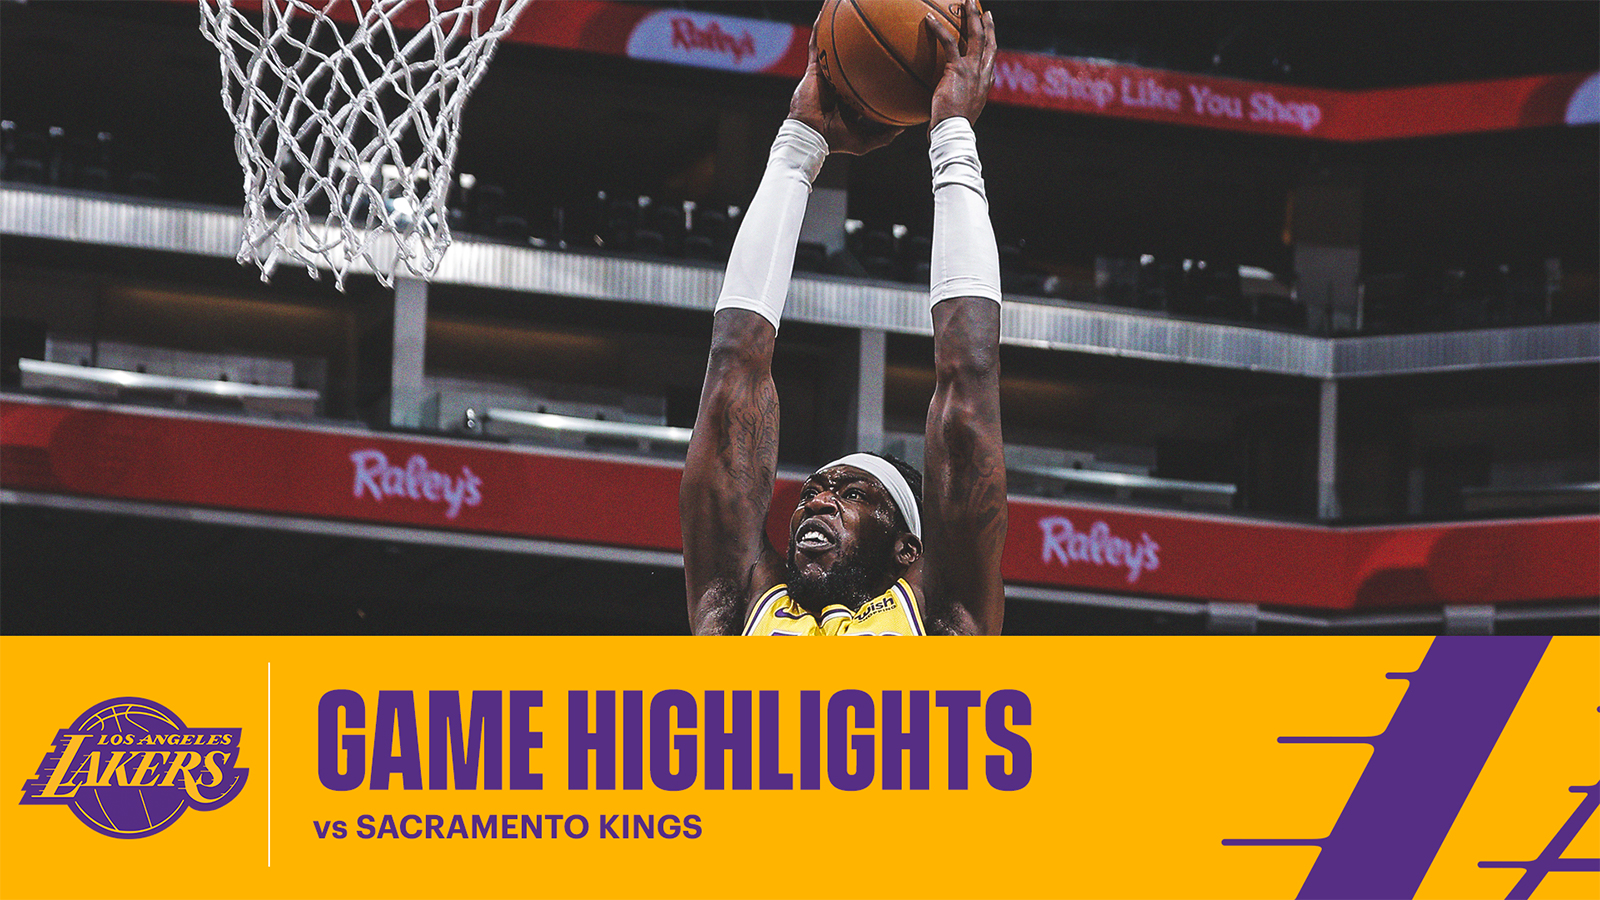 HIGHLIGHTS | Montrezl Harrell (26 pts, 11 reb) vs Sacramento Kings